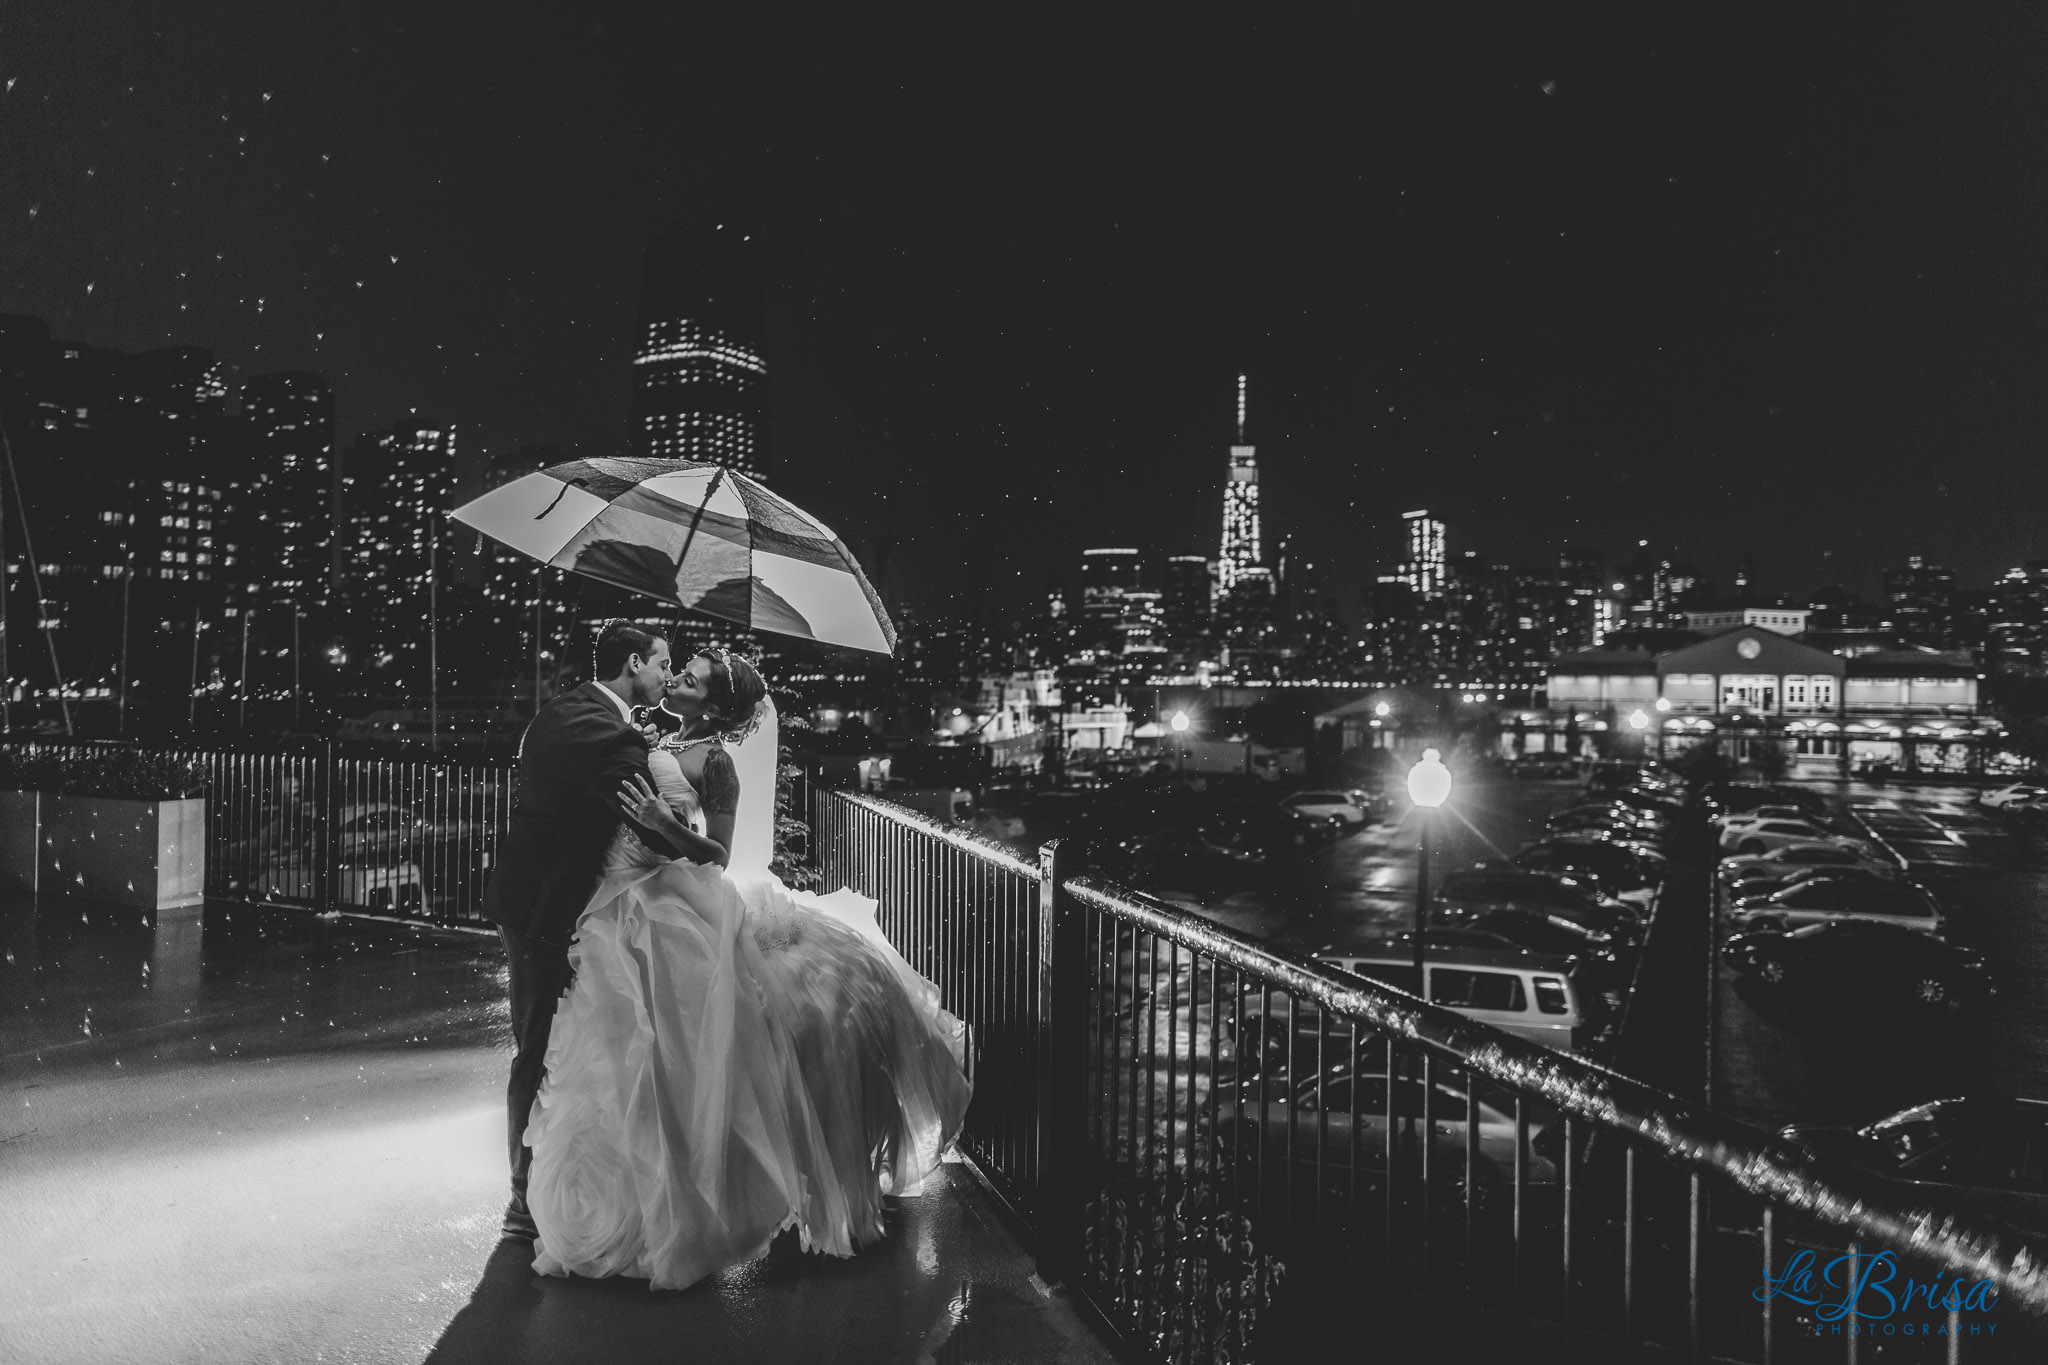 Photographer Jersey City  Heather & Cosimo Preview  Wedding Photography  Jersey City, NJ  Chris Hsieh